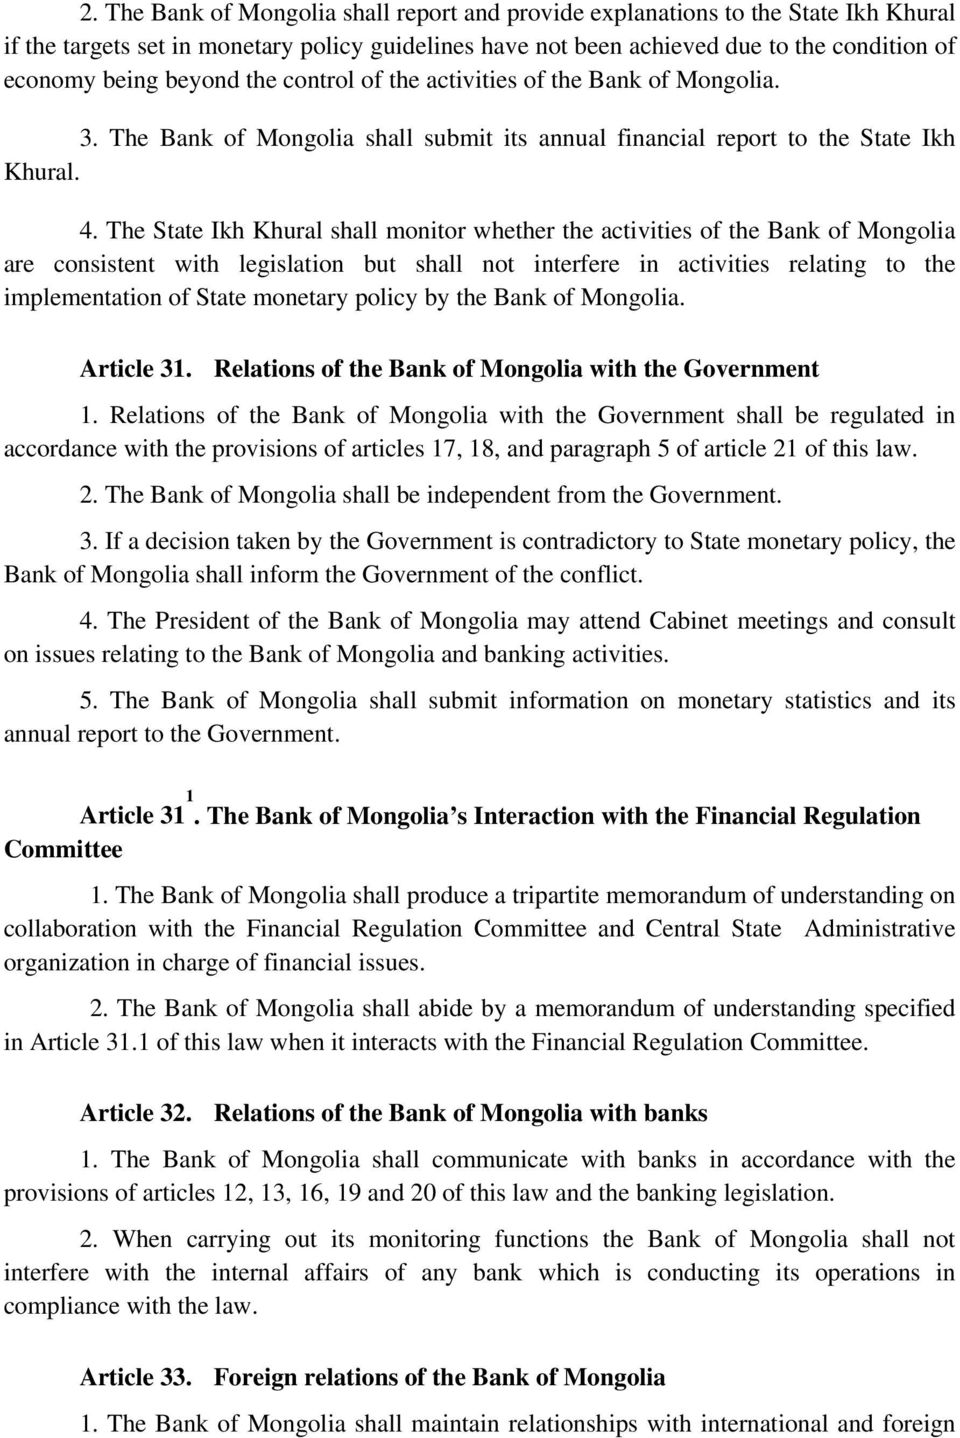 The State Ikh Khural shall monitor whether the activities of the Bank of Mongolia are consistent with legislation but shall not interfere in activities relating to the implementation of State